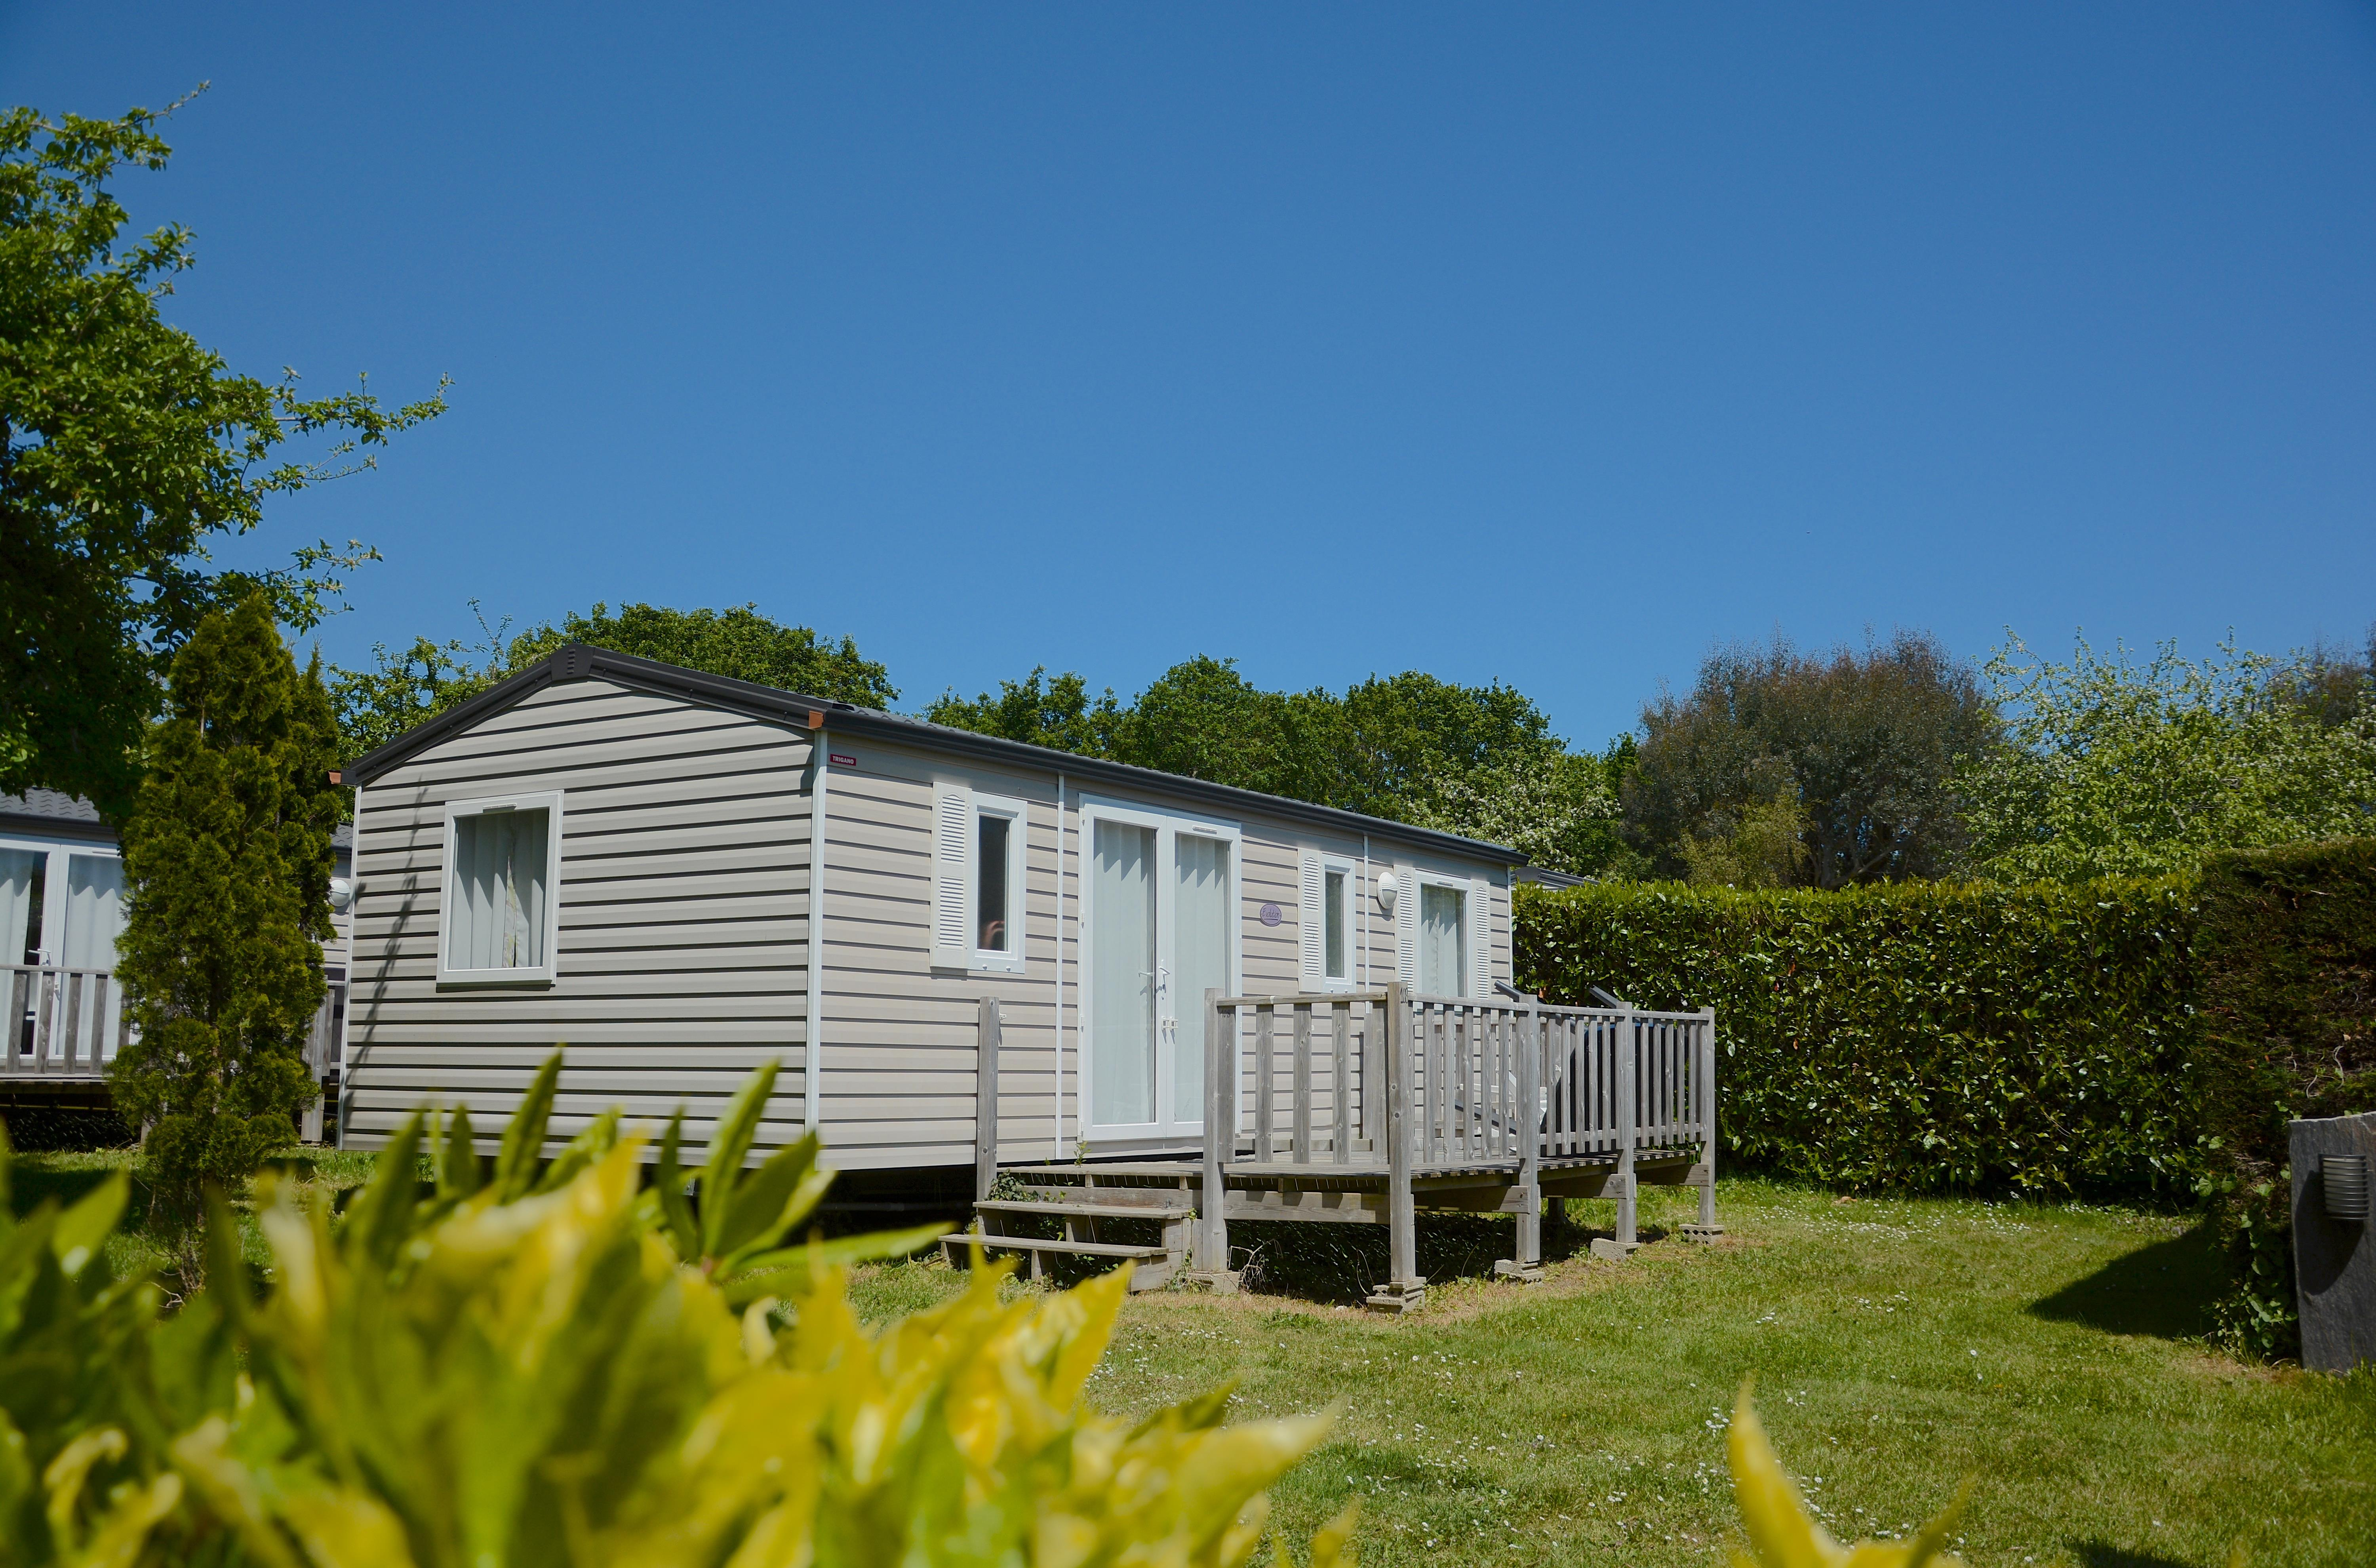 Carte Cezam Location Mobil Home.Mobil Home 6 Personnes 3 Chambres Terrasse Camping Benodet